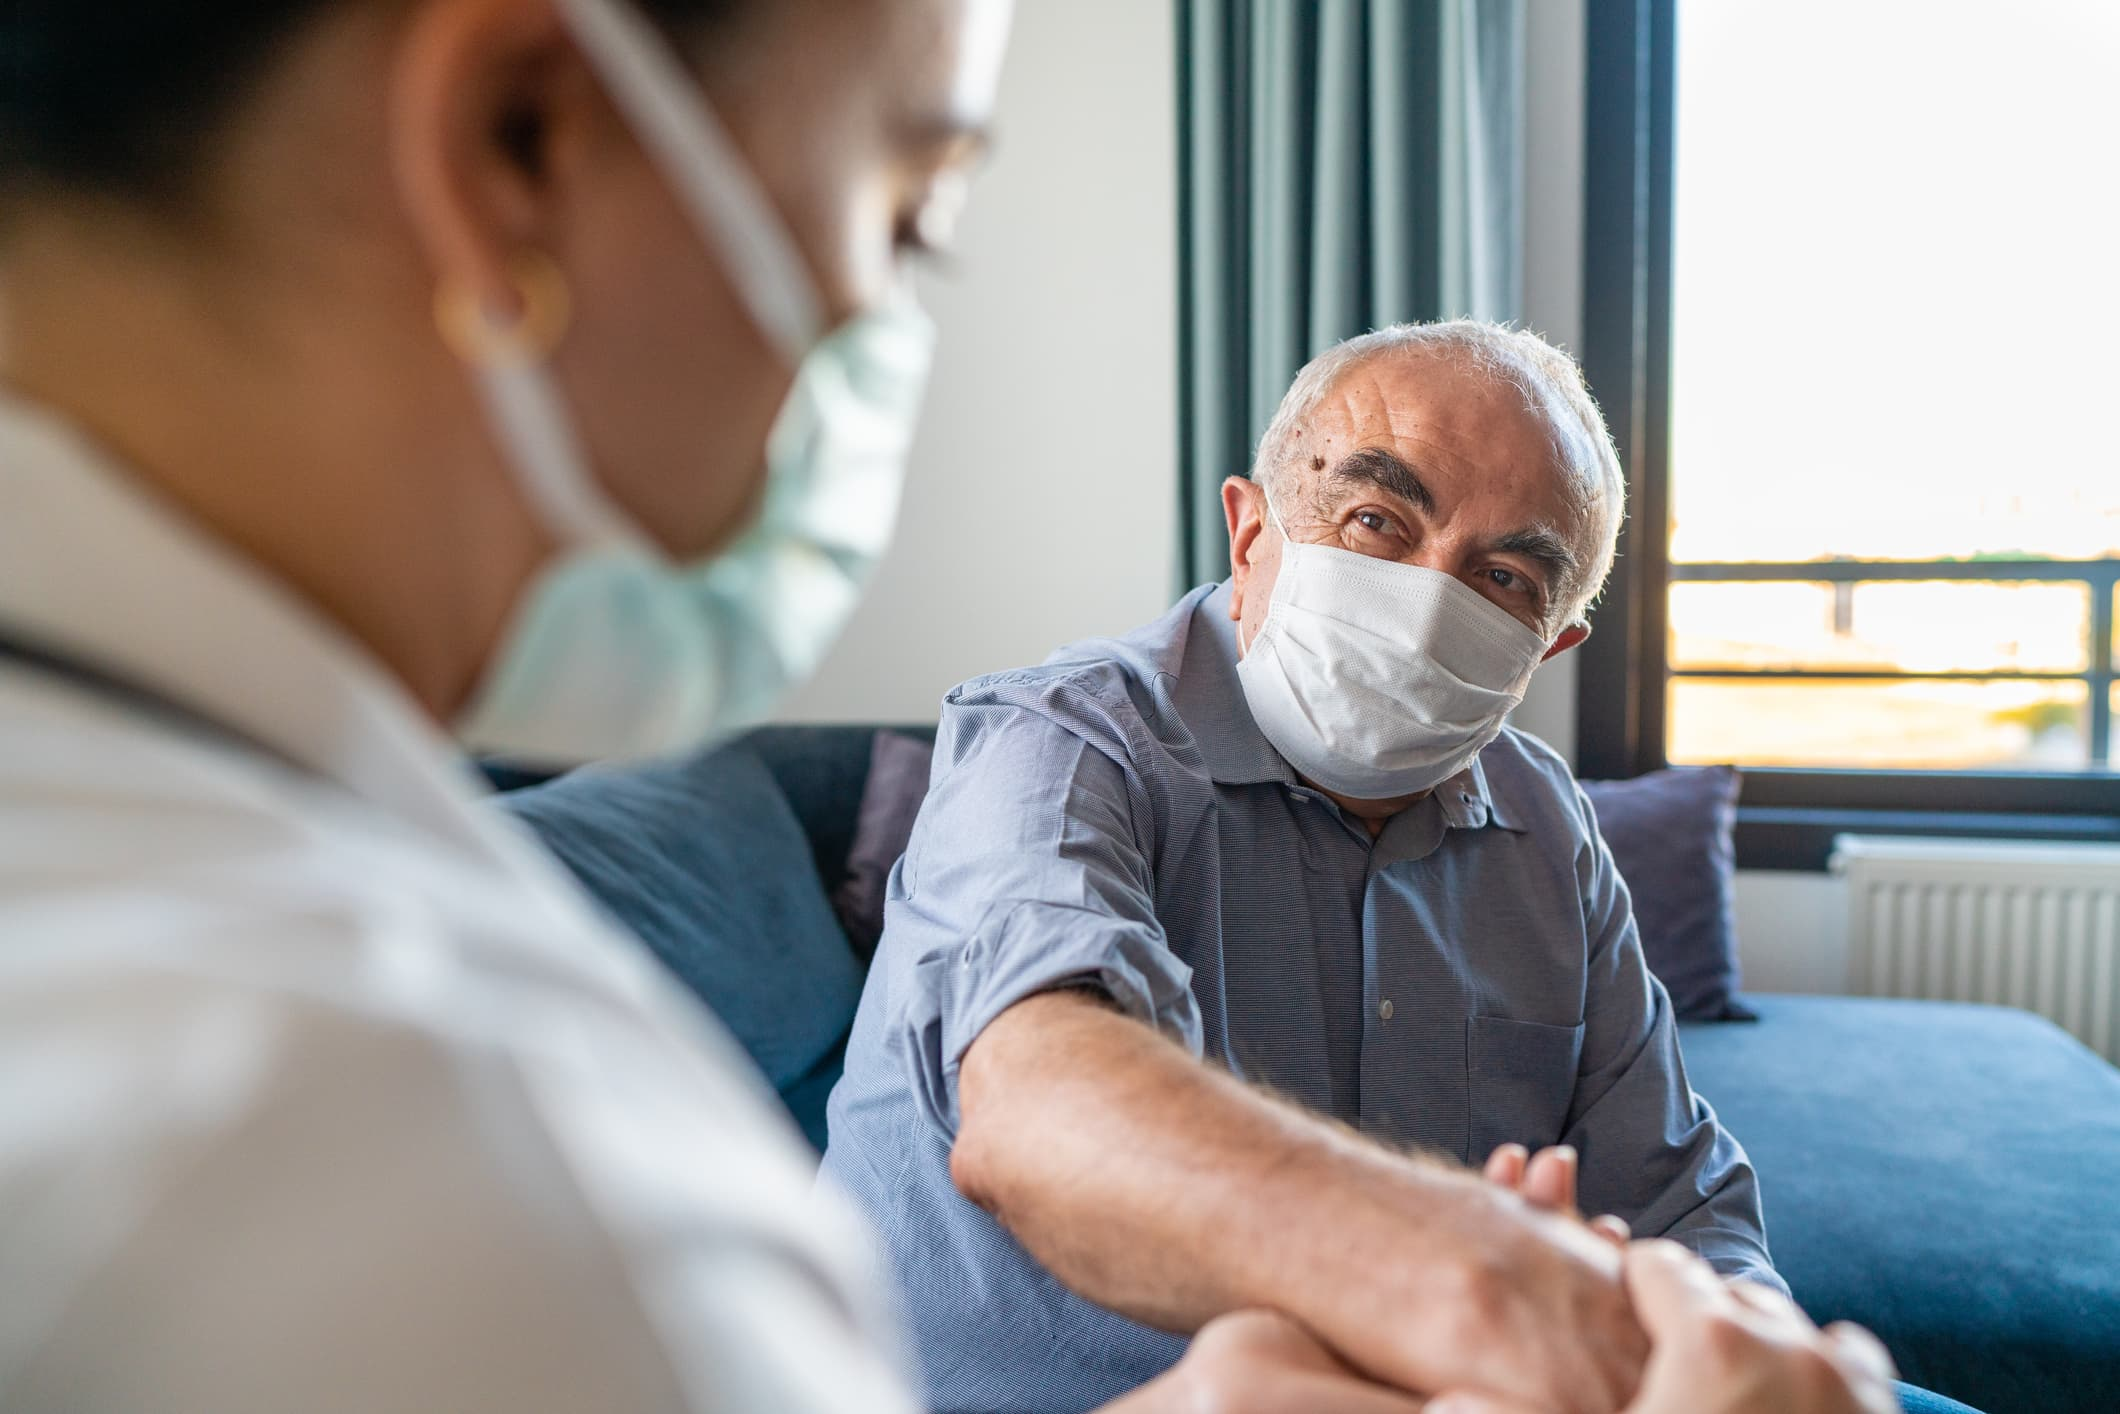 Switching to Medicare from the public health exchange: How to avoid costly mistakes